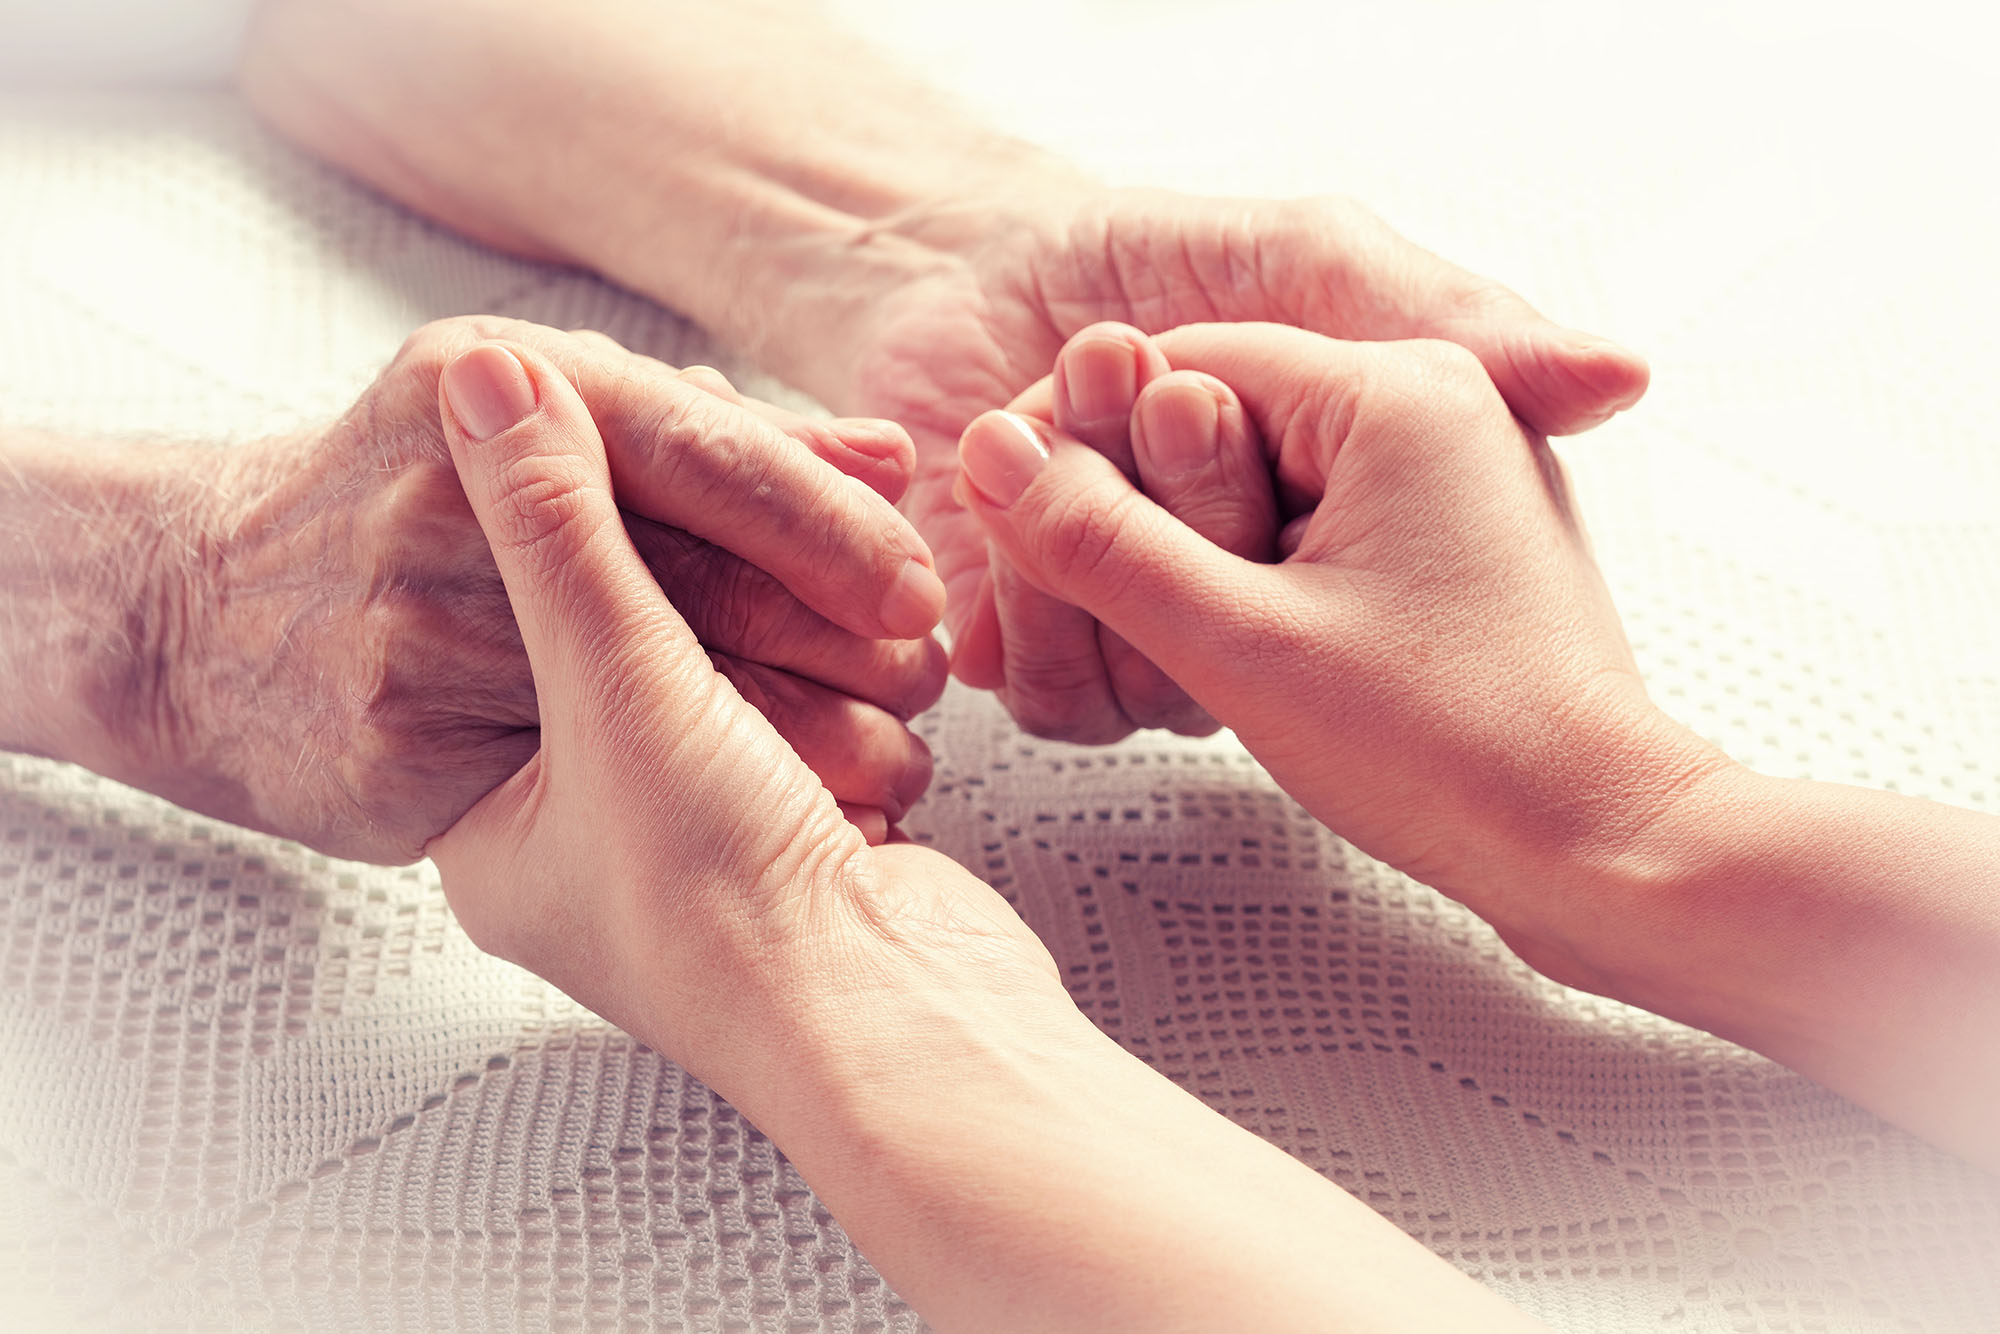 5 questions to ask before becoming a carer